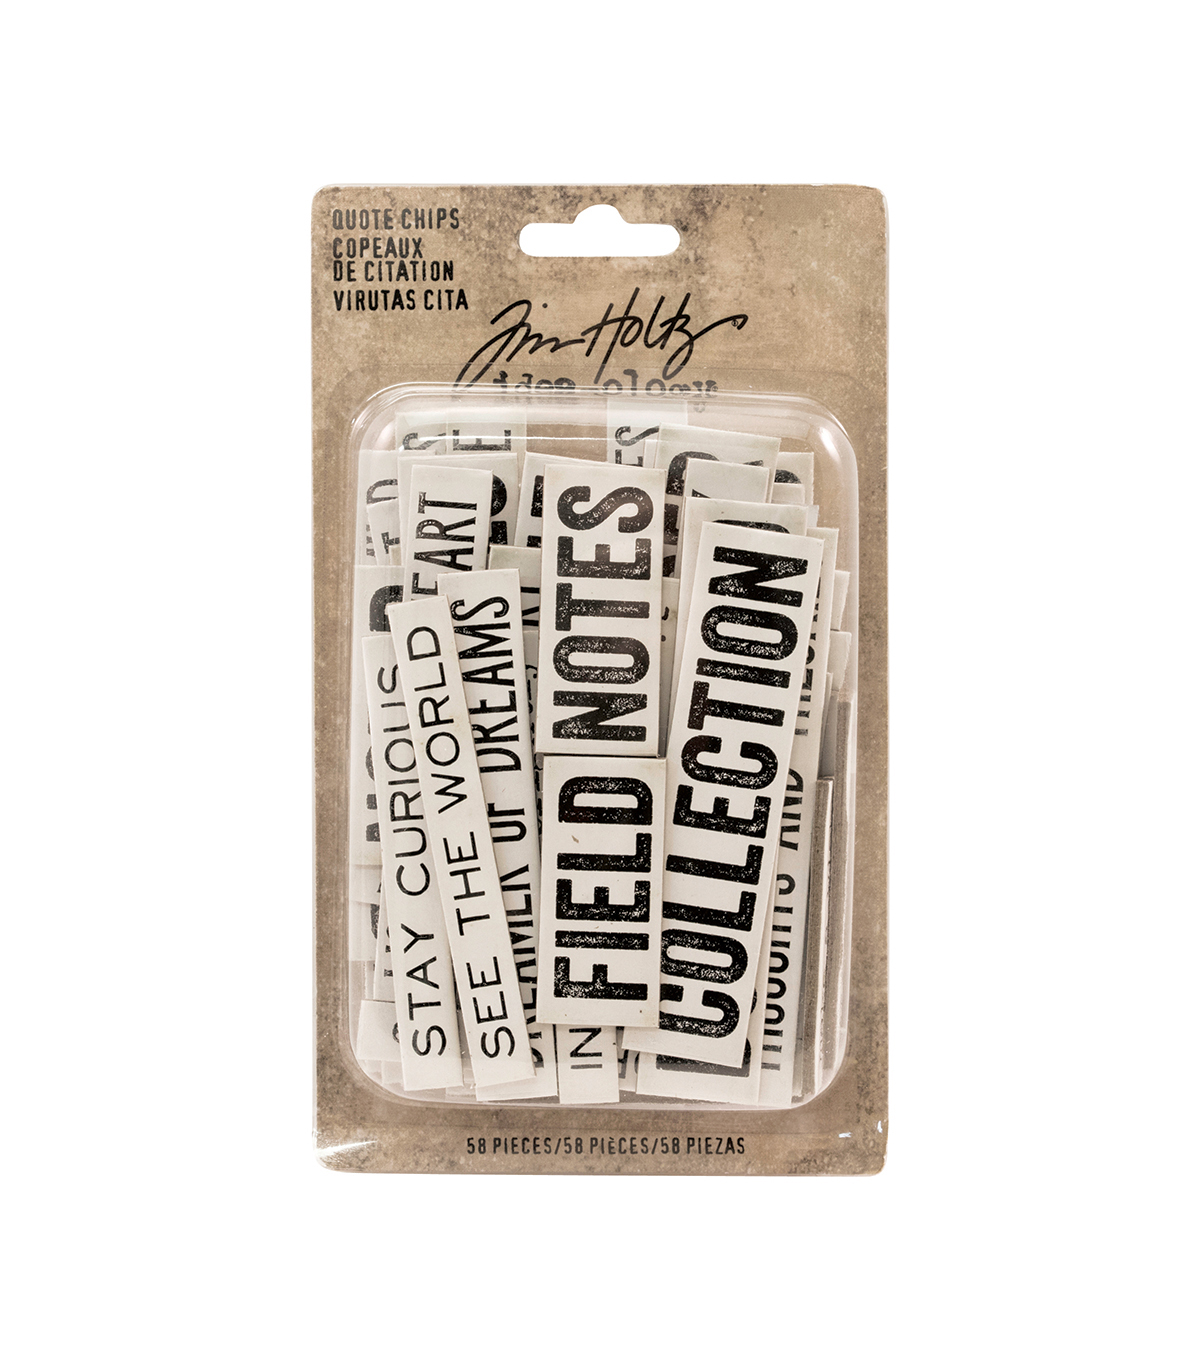 Tim Holtz® Idea-ology® Pack of 58 Quote Chips